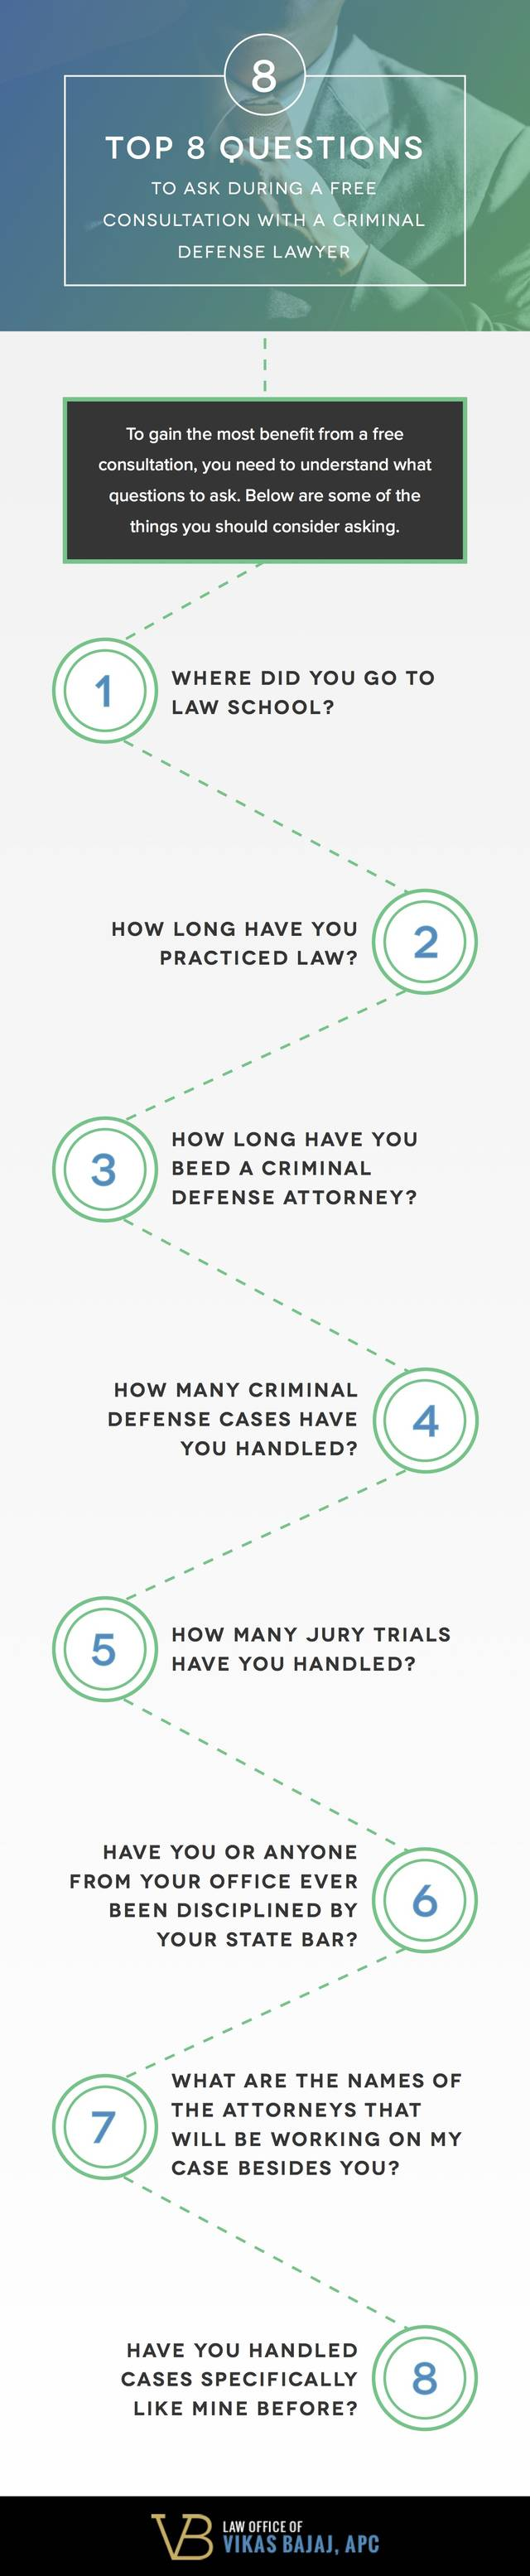 Top 8 questions to ask your criminal defense attorney infographic